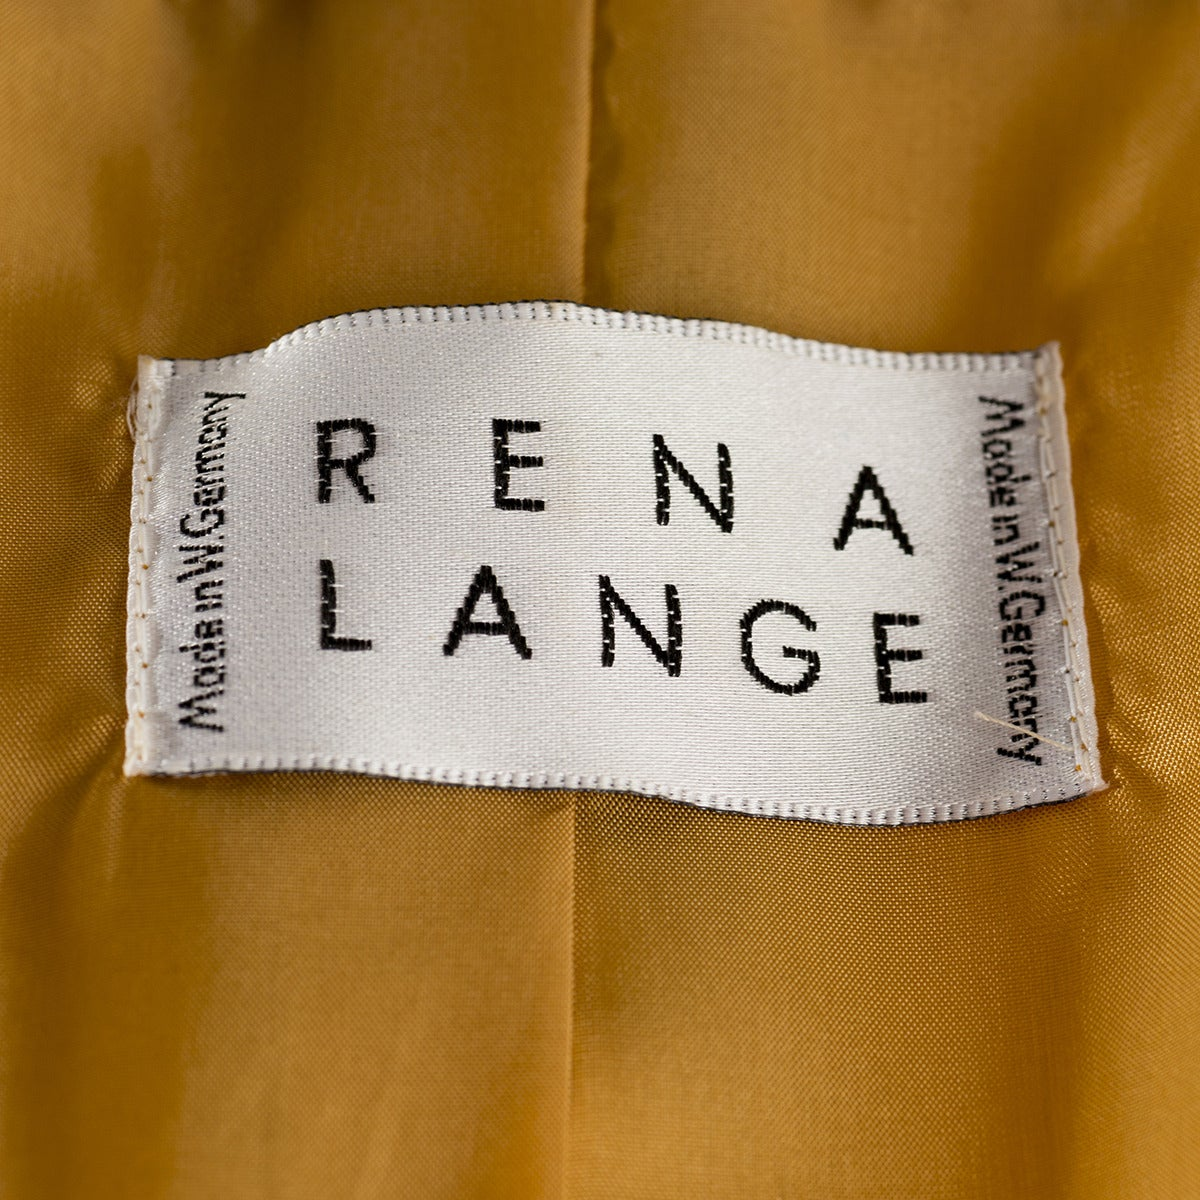 Rena Lange Yellow Damask Jacket In Excellent Condition For Sale In Gazzaniga (BG), IT